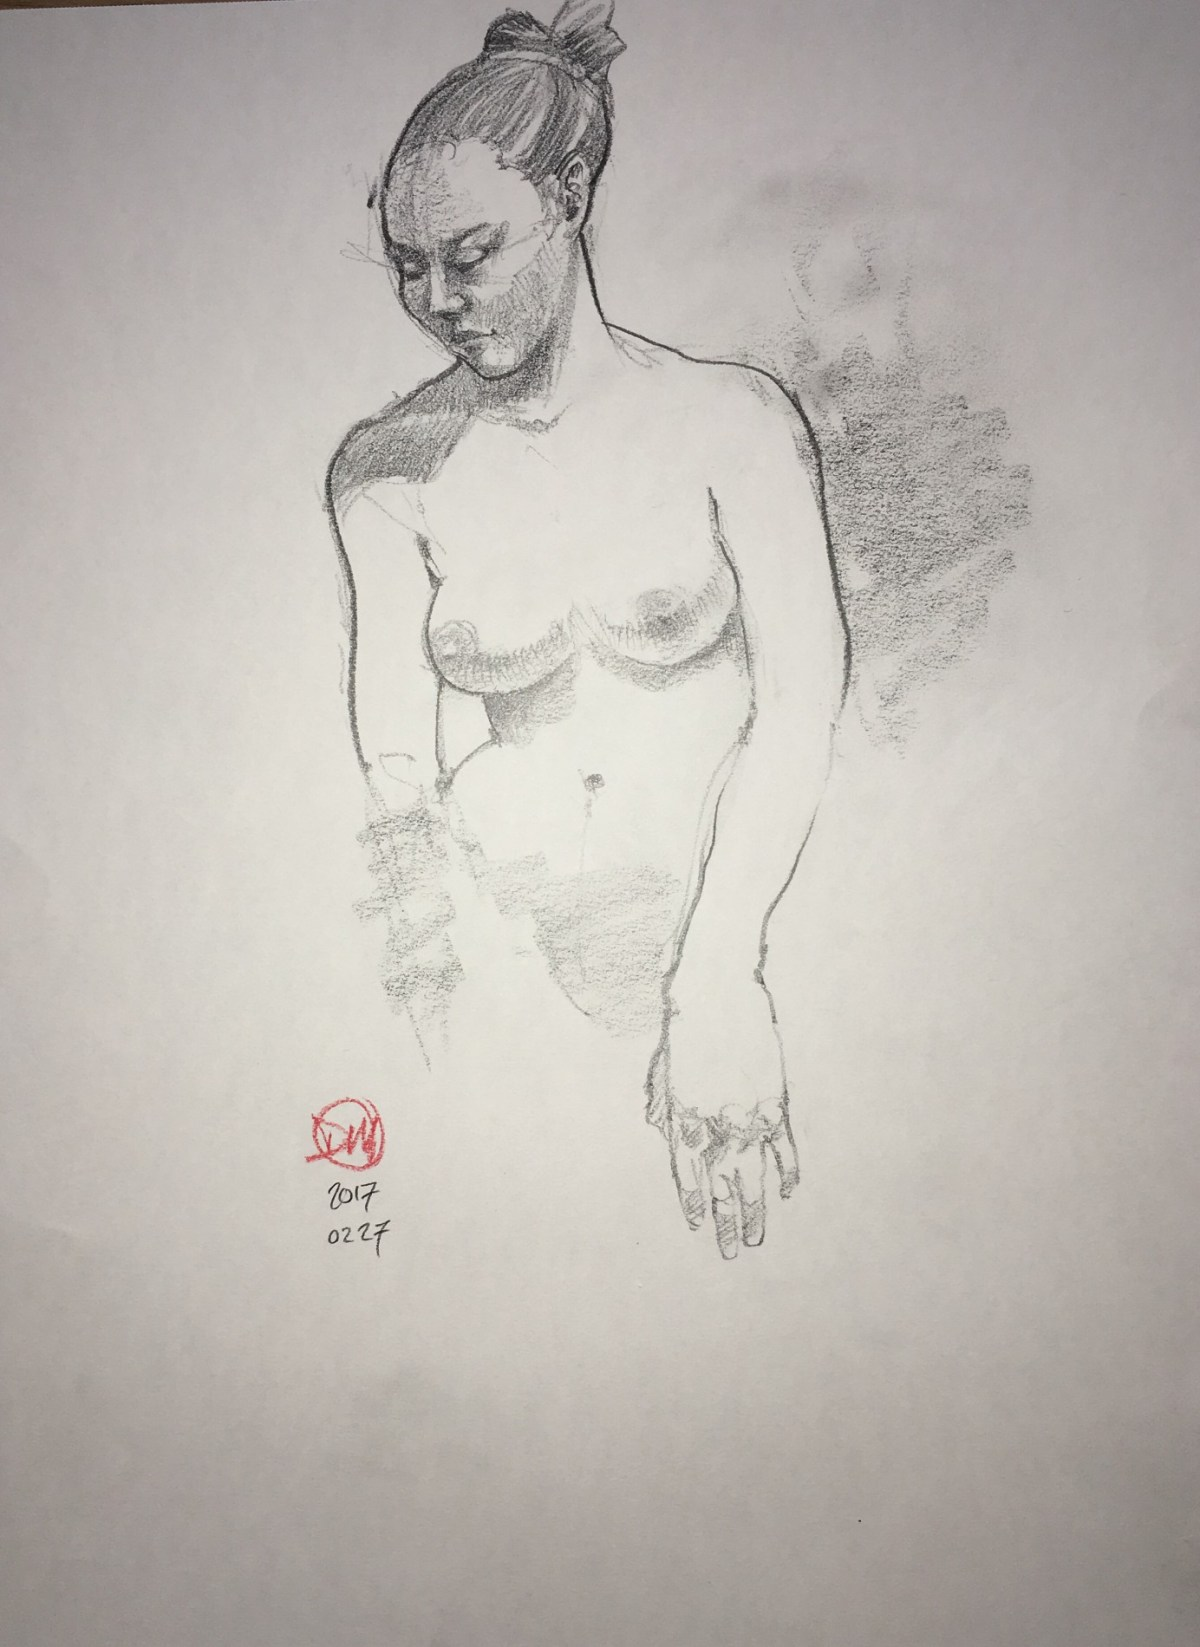 Monday's life drawing